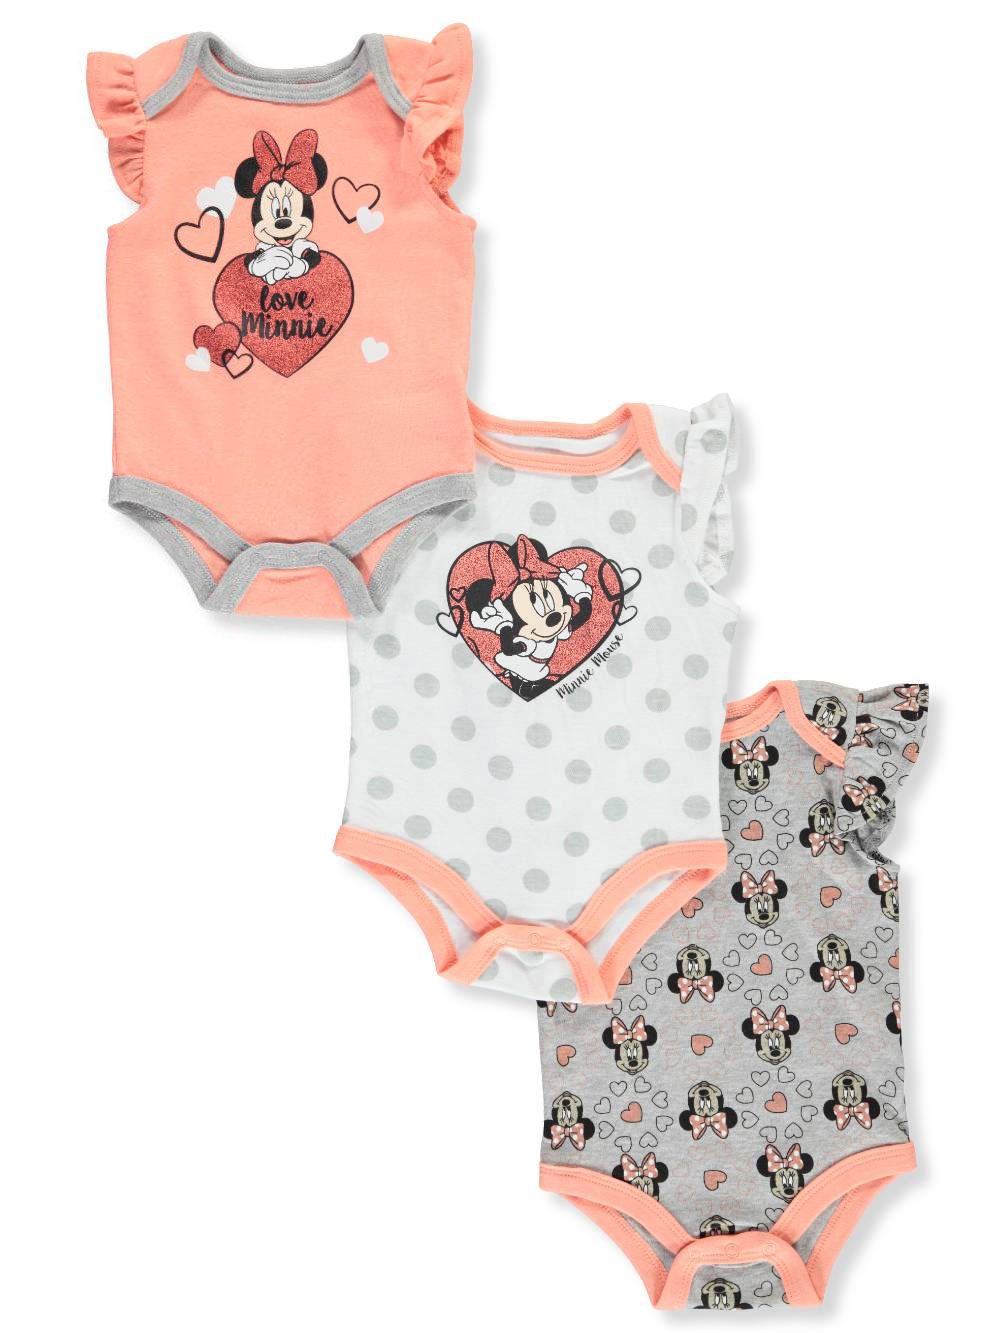 df8b9fa61cb Minnie Mouse Baby Girls' 3-Pack Bodysuits by Disney from Cookie's Kids